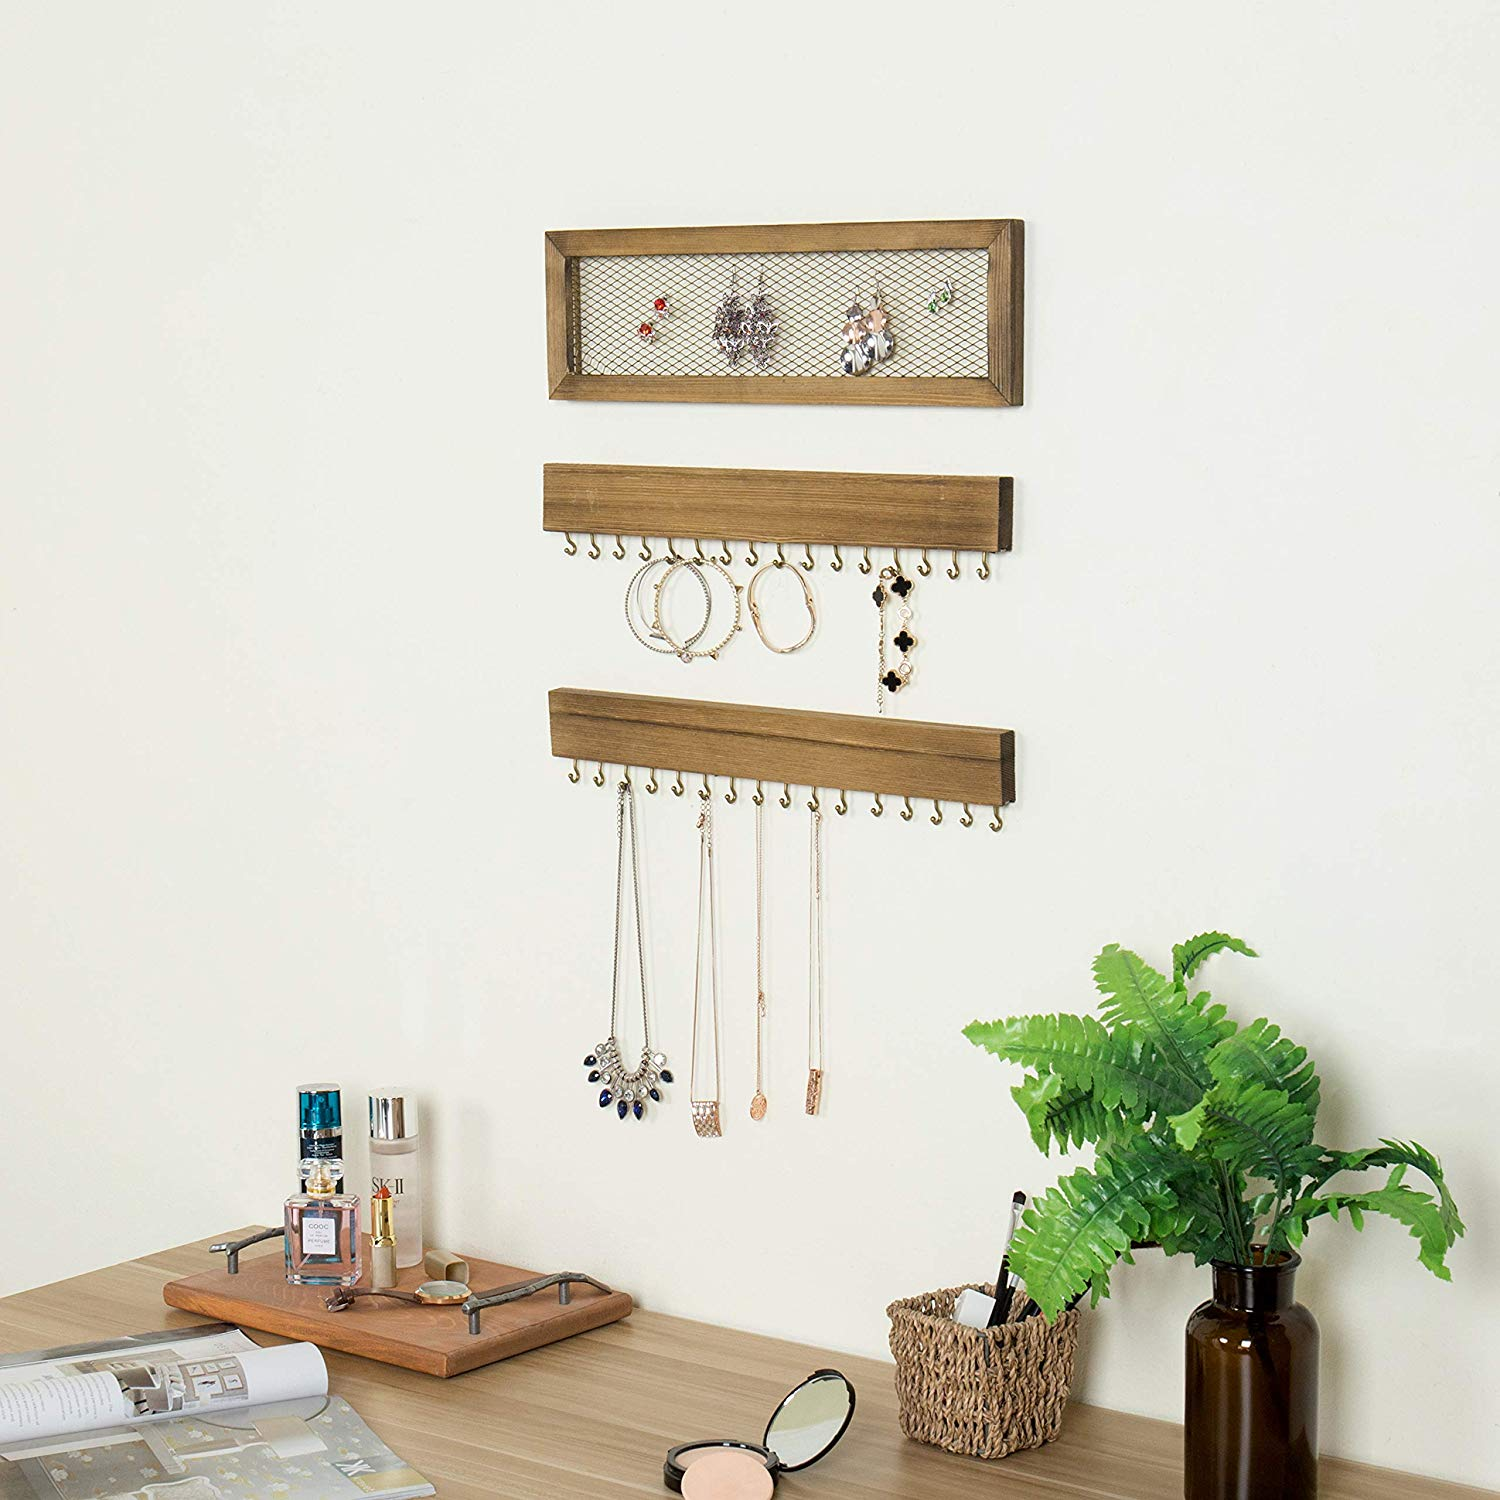 Design  Hanging Jewelry Organizer Necklace Hanger Bracelet Holder Wall Mount Necklace Organizer with hooks